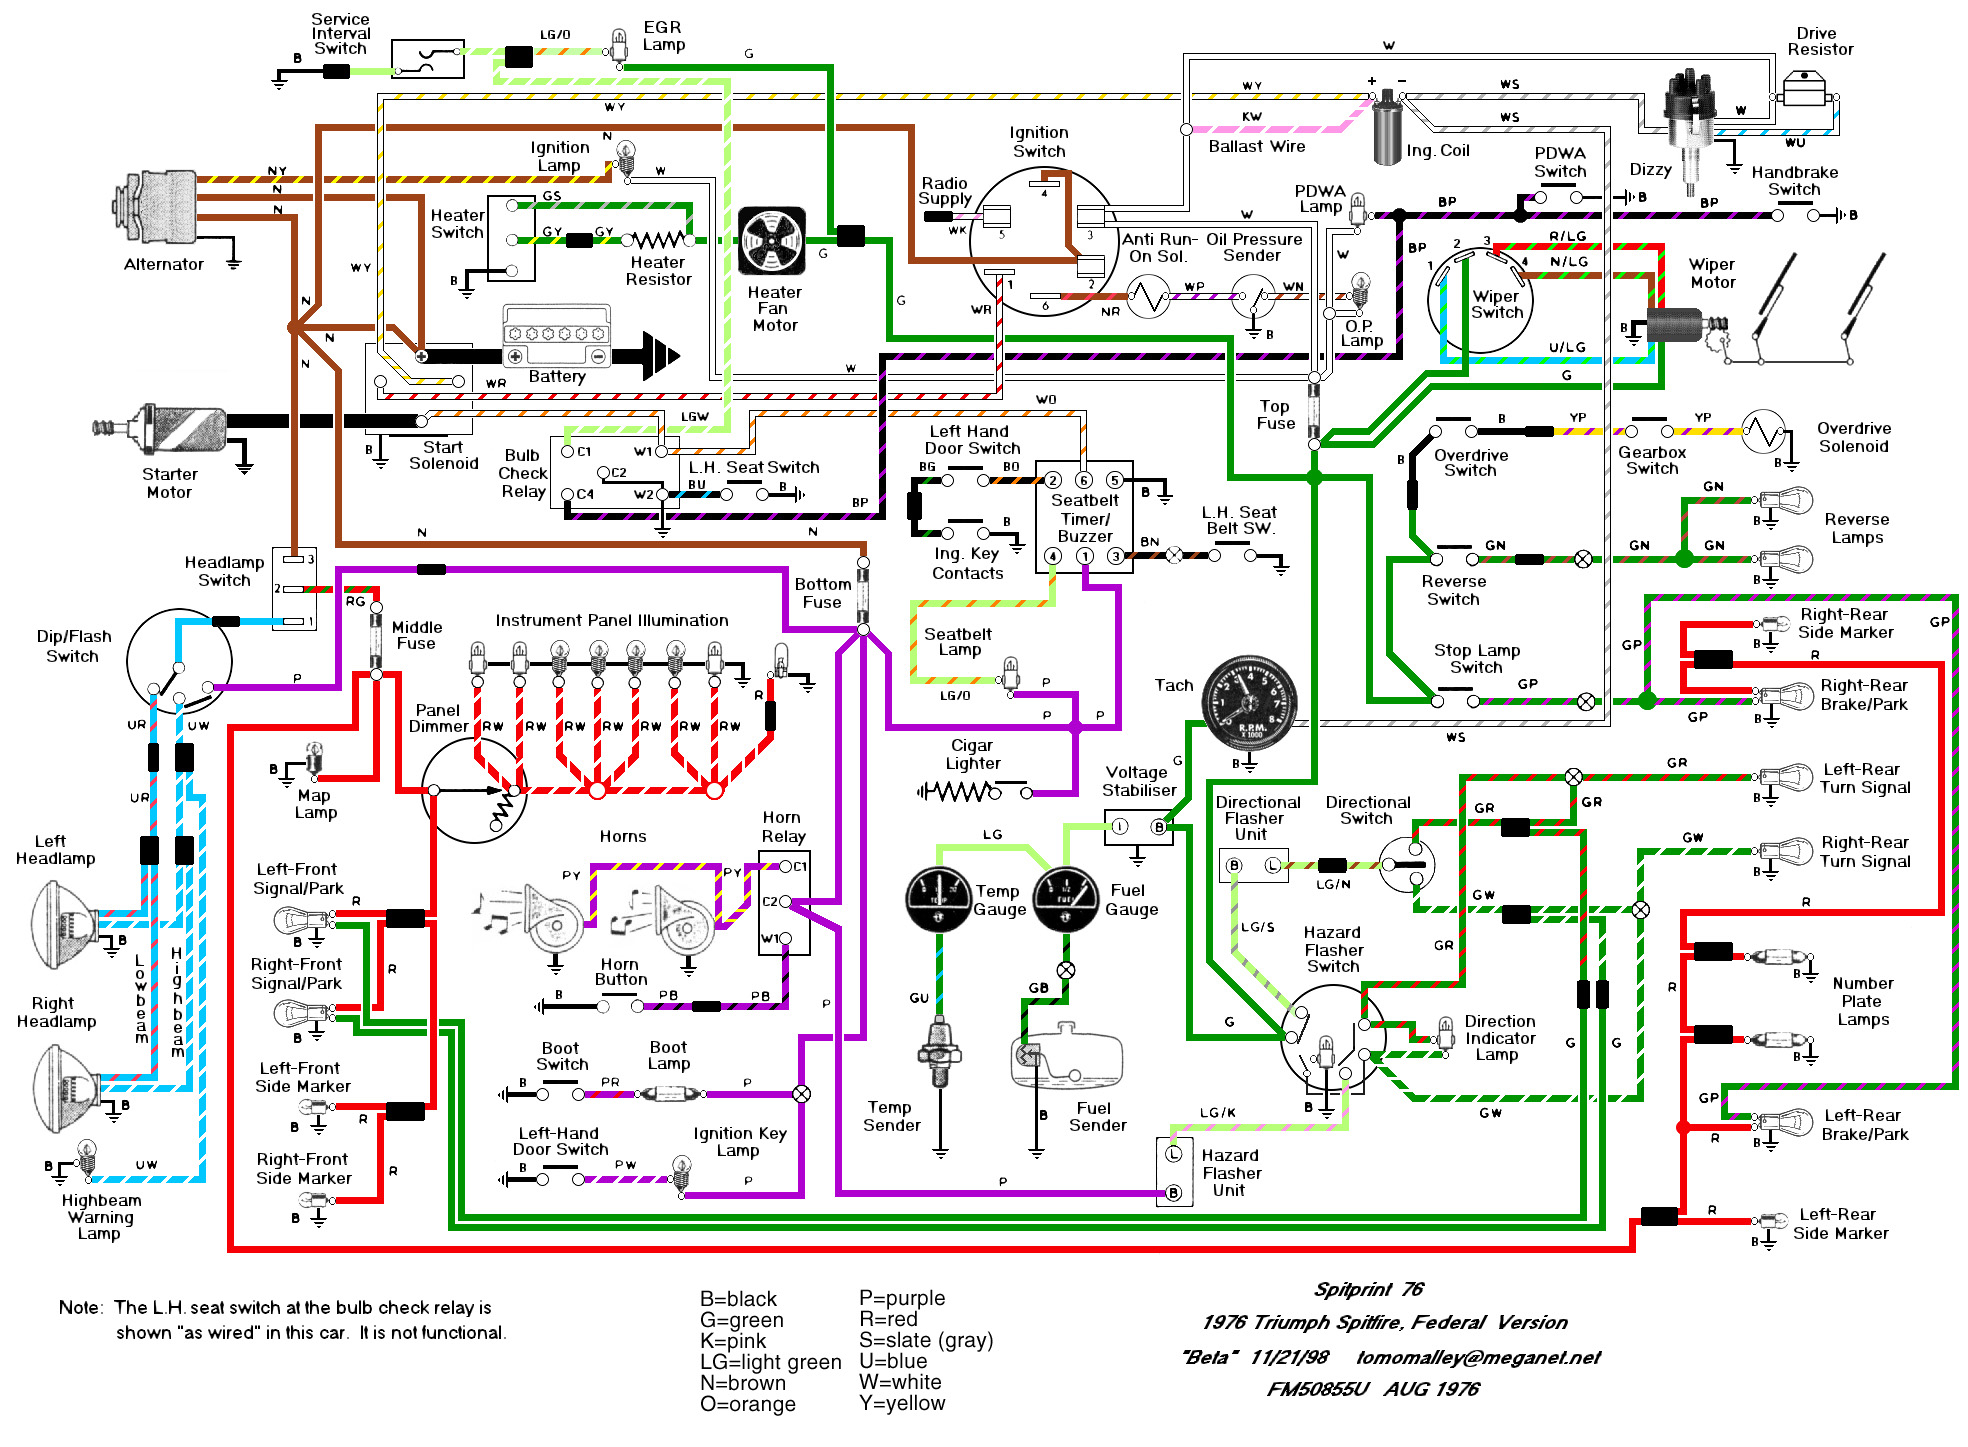 Hdtv Connection Diagrams - Product Wiring Diagrams •